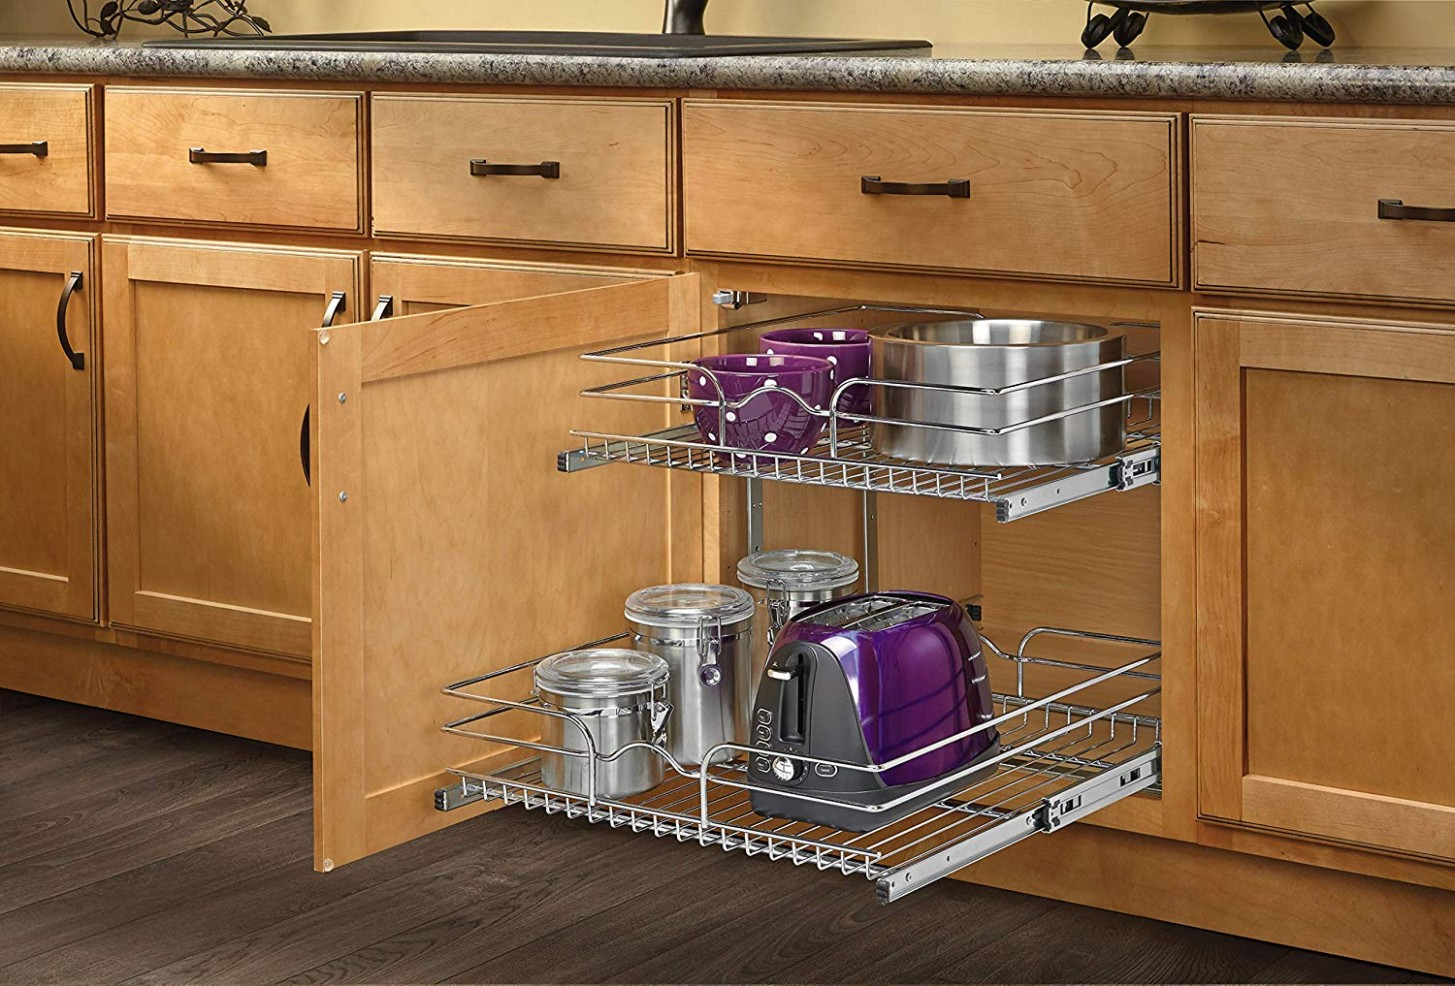 Kitchen Cabinet Accessories – What Will Work For You? – The  - Kitchen Cabinet Accessories That Are Popular